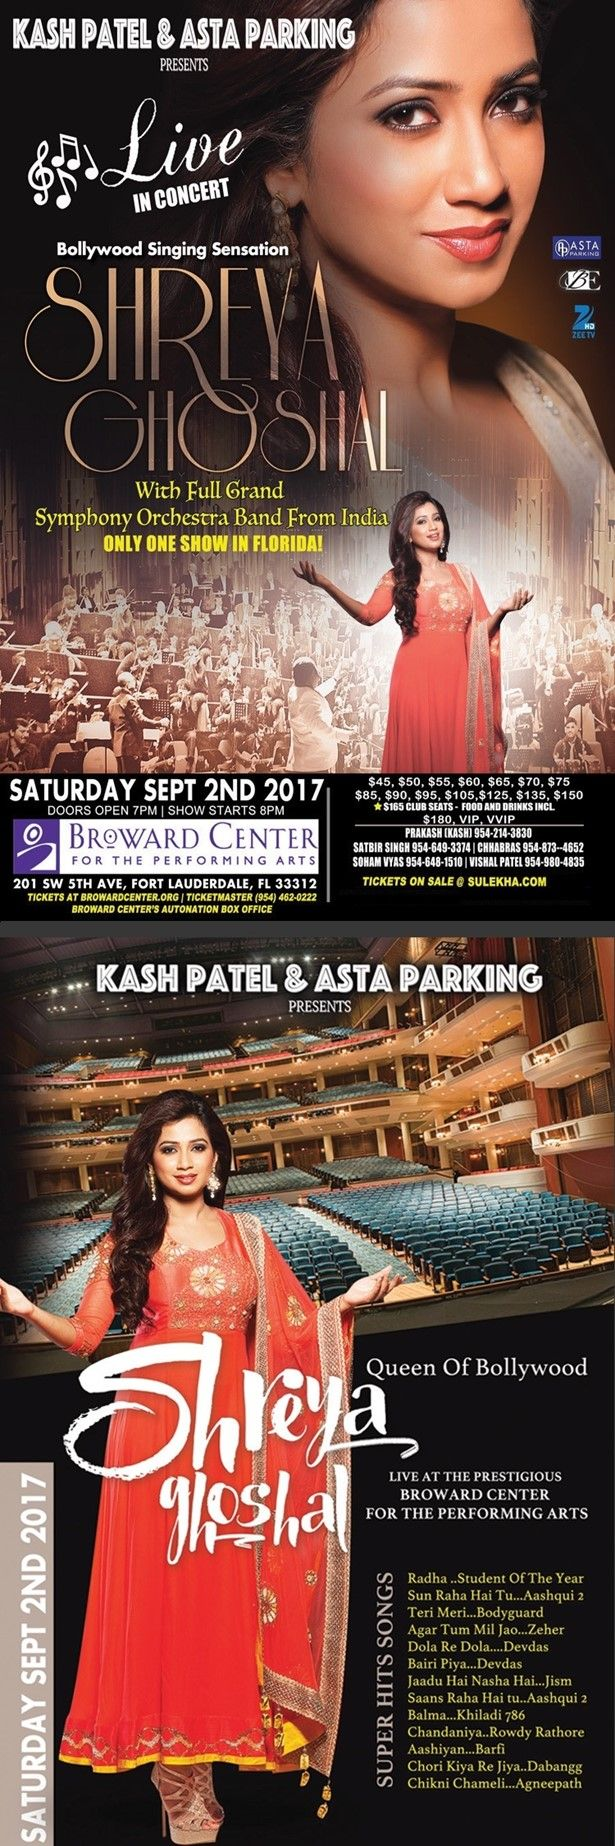 Shreya Ghoshal Live In Florida in Broward Center for the Performing Arts, Amaturo Theater, Fort Lauderdale, FL | Indian Event